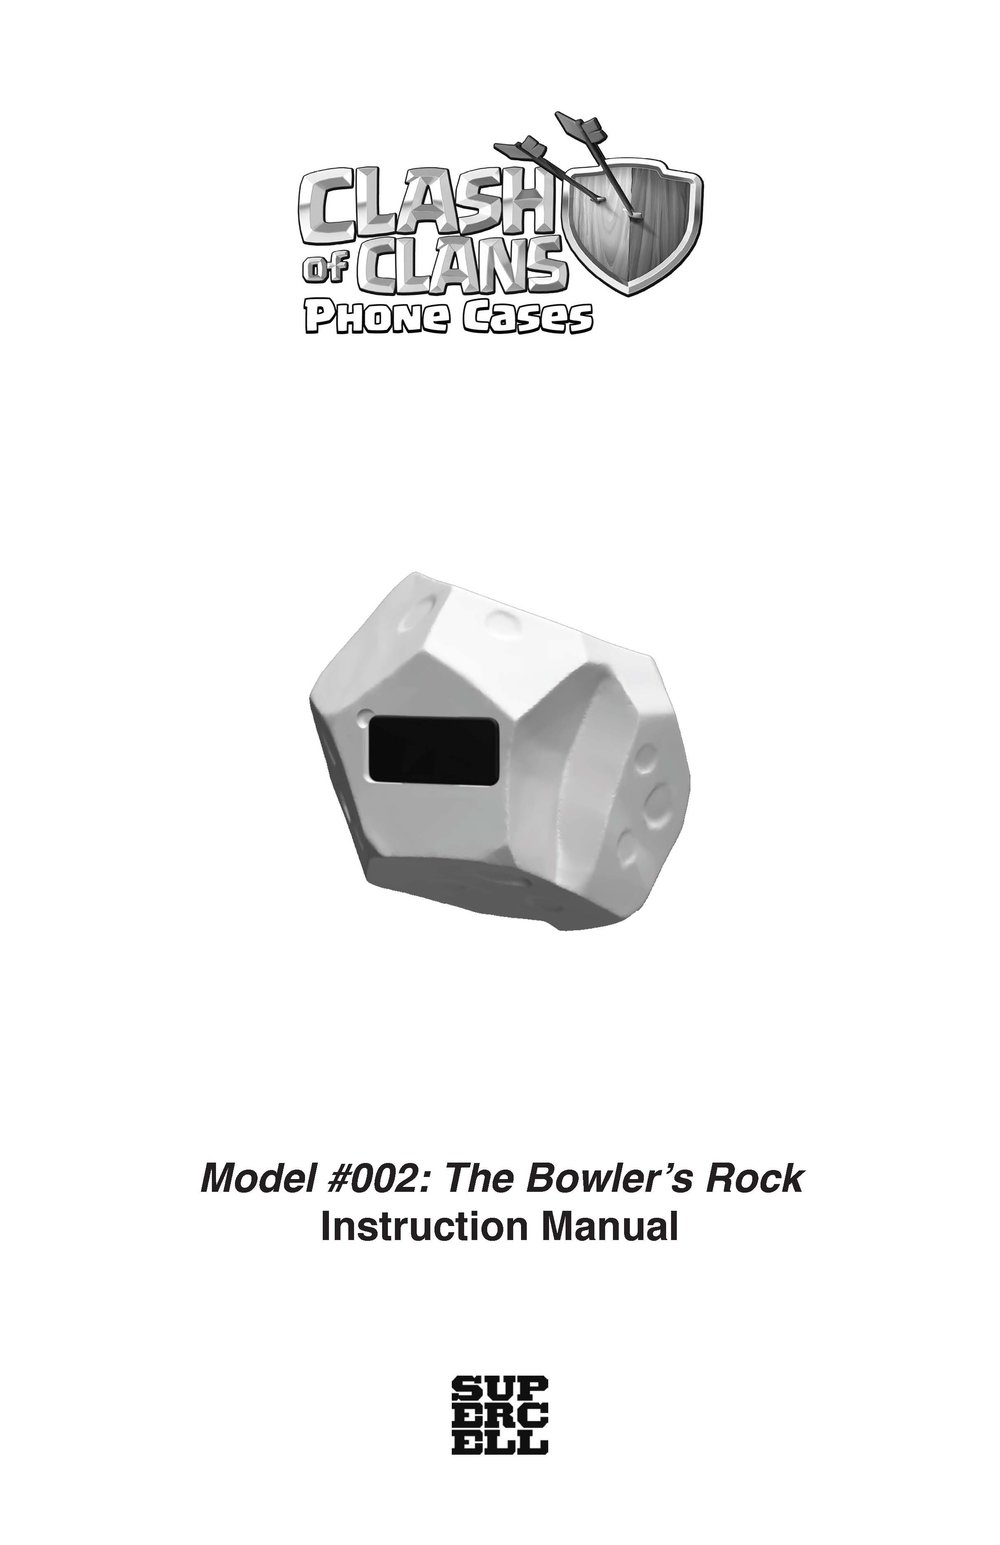 Clash-of-Clans-Phone-Cases-Instruction-Manual-Model-002-The-Bowlers-Rock_Page_1.jpg